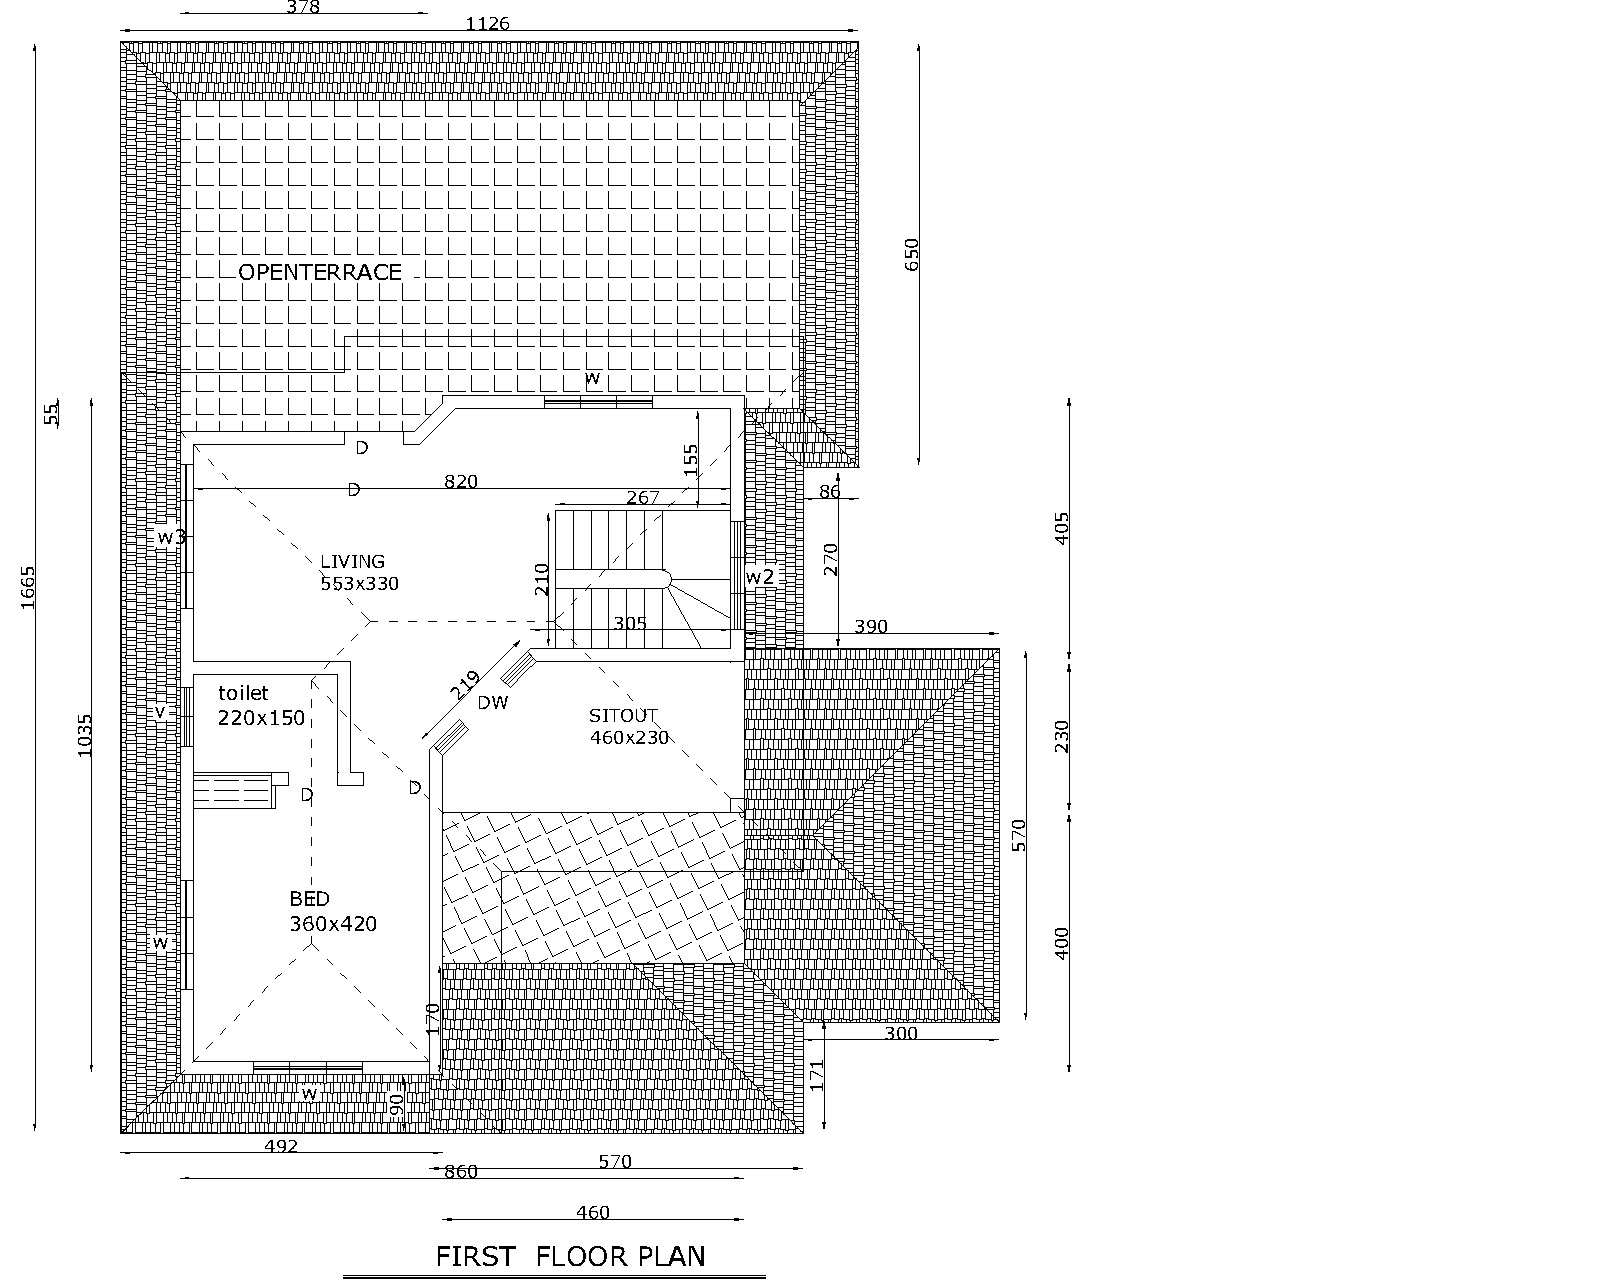 4 bedroom house plans kerala style submited images pic2fly 3 bedroom 2 bath car garge homes 3 best home and house